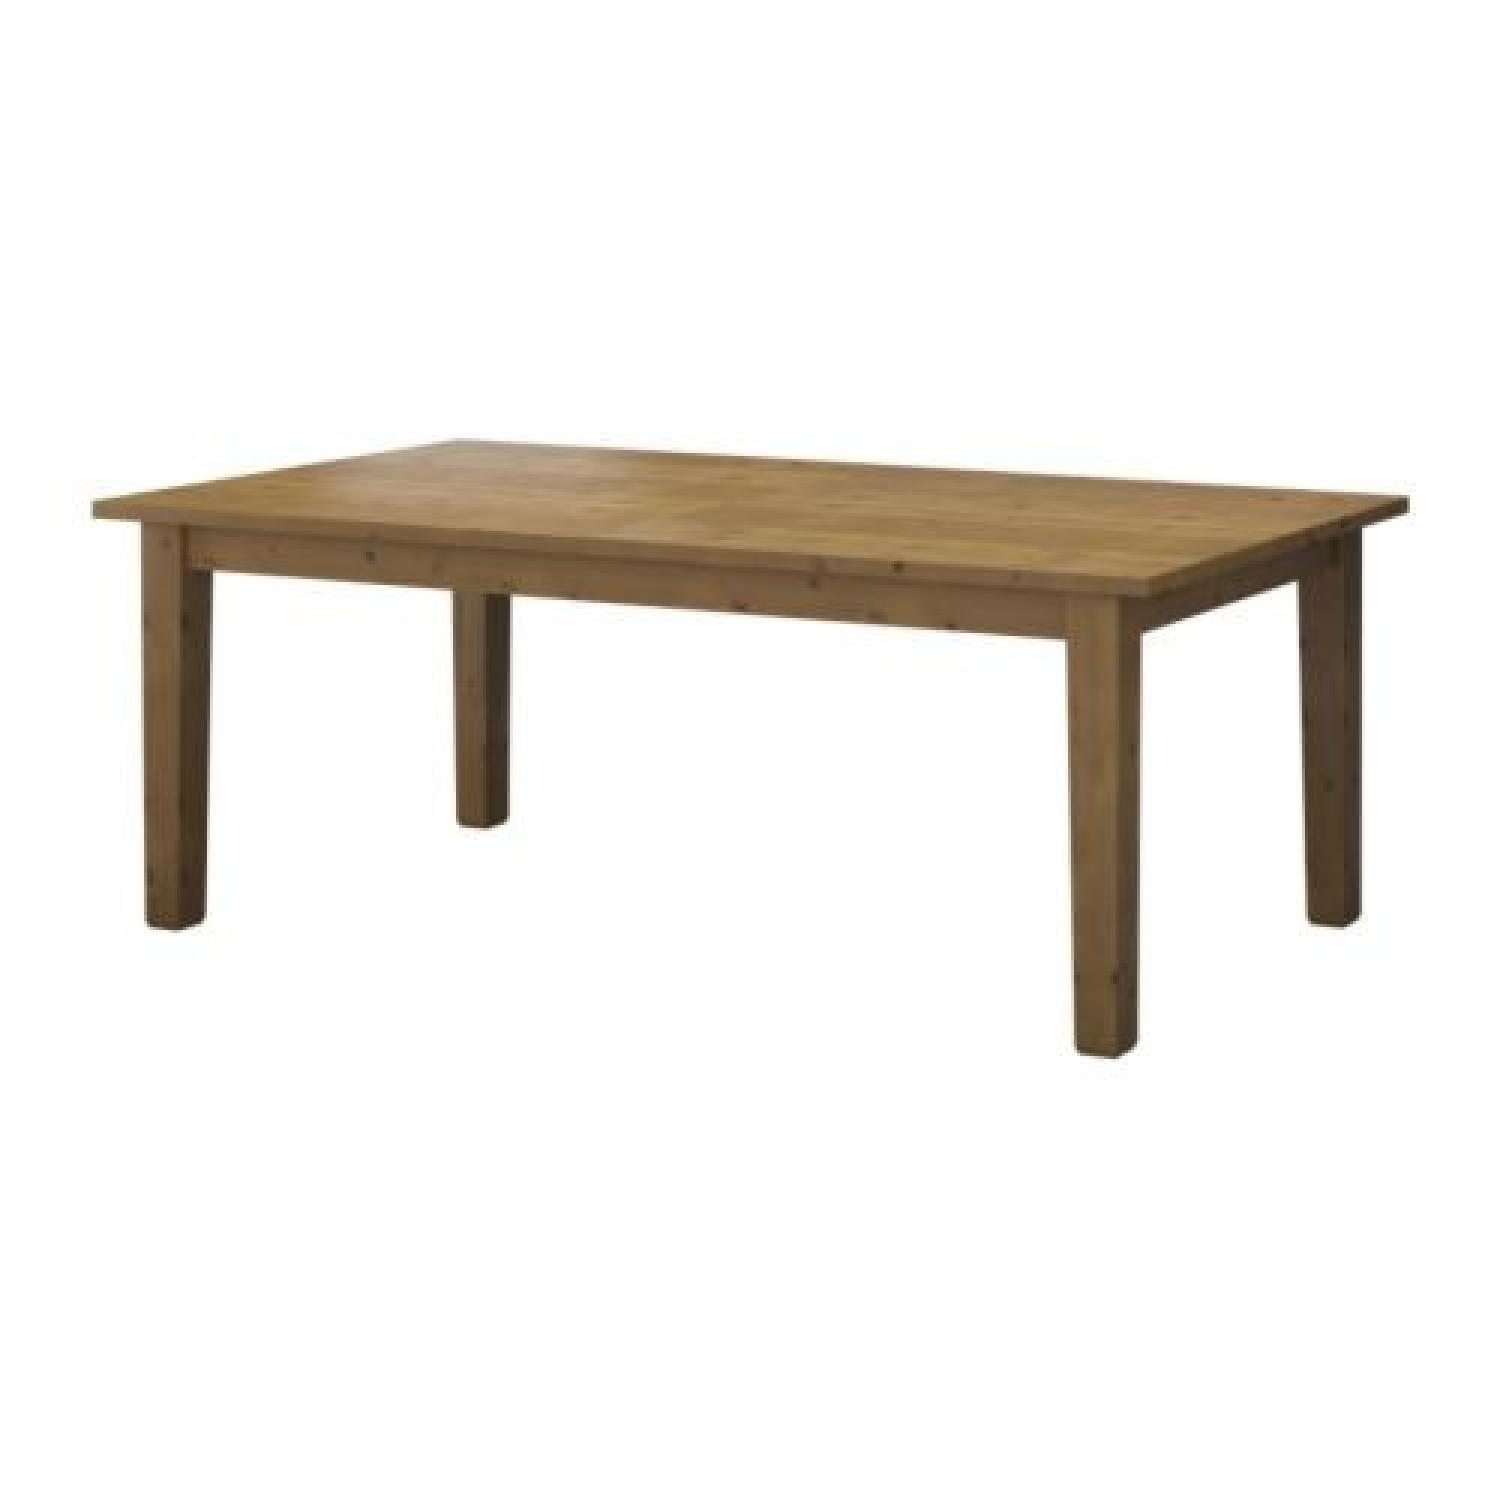 Ikea Stornas Dining Table